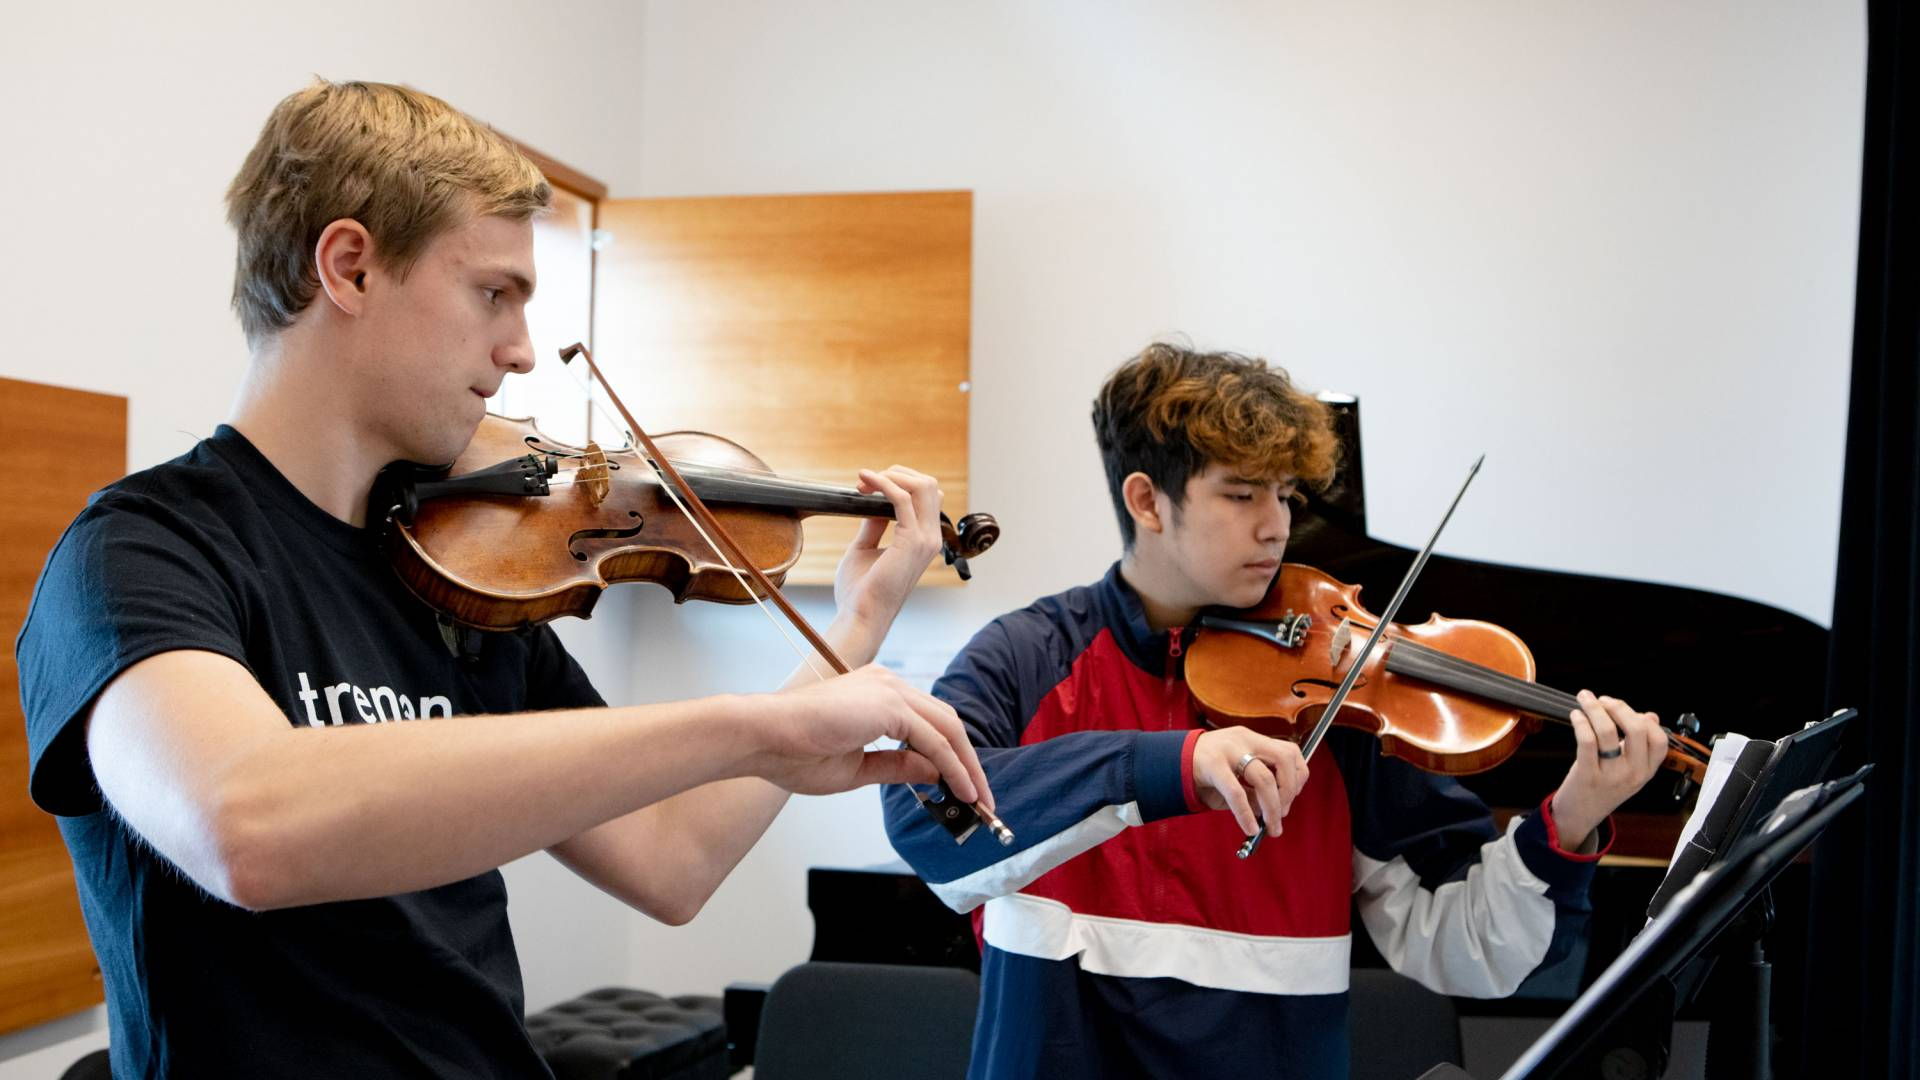 Nick Schmeller '21 and Trenton student Michael Martinez having a private violin lesson